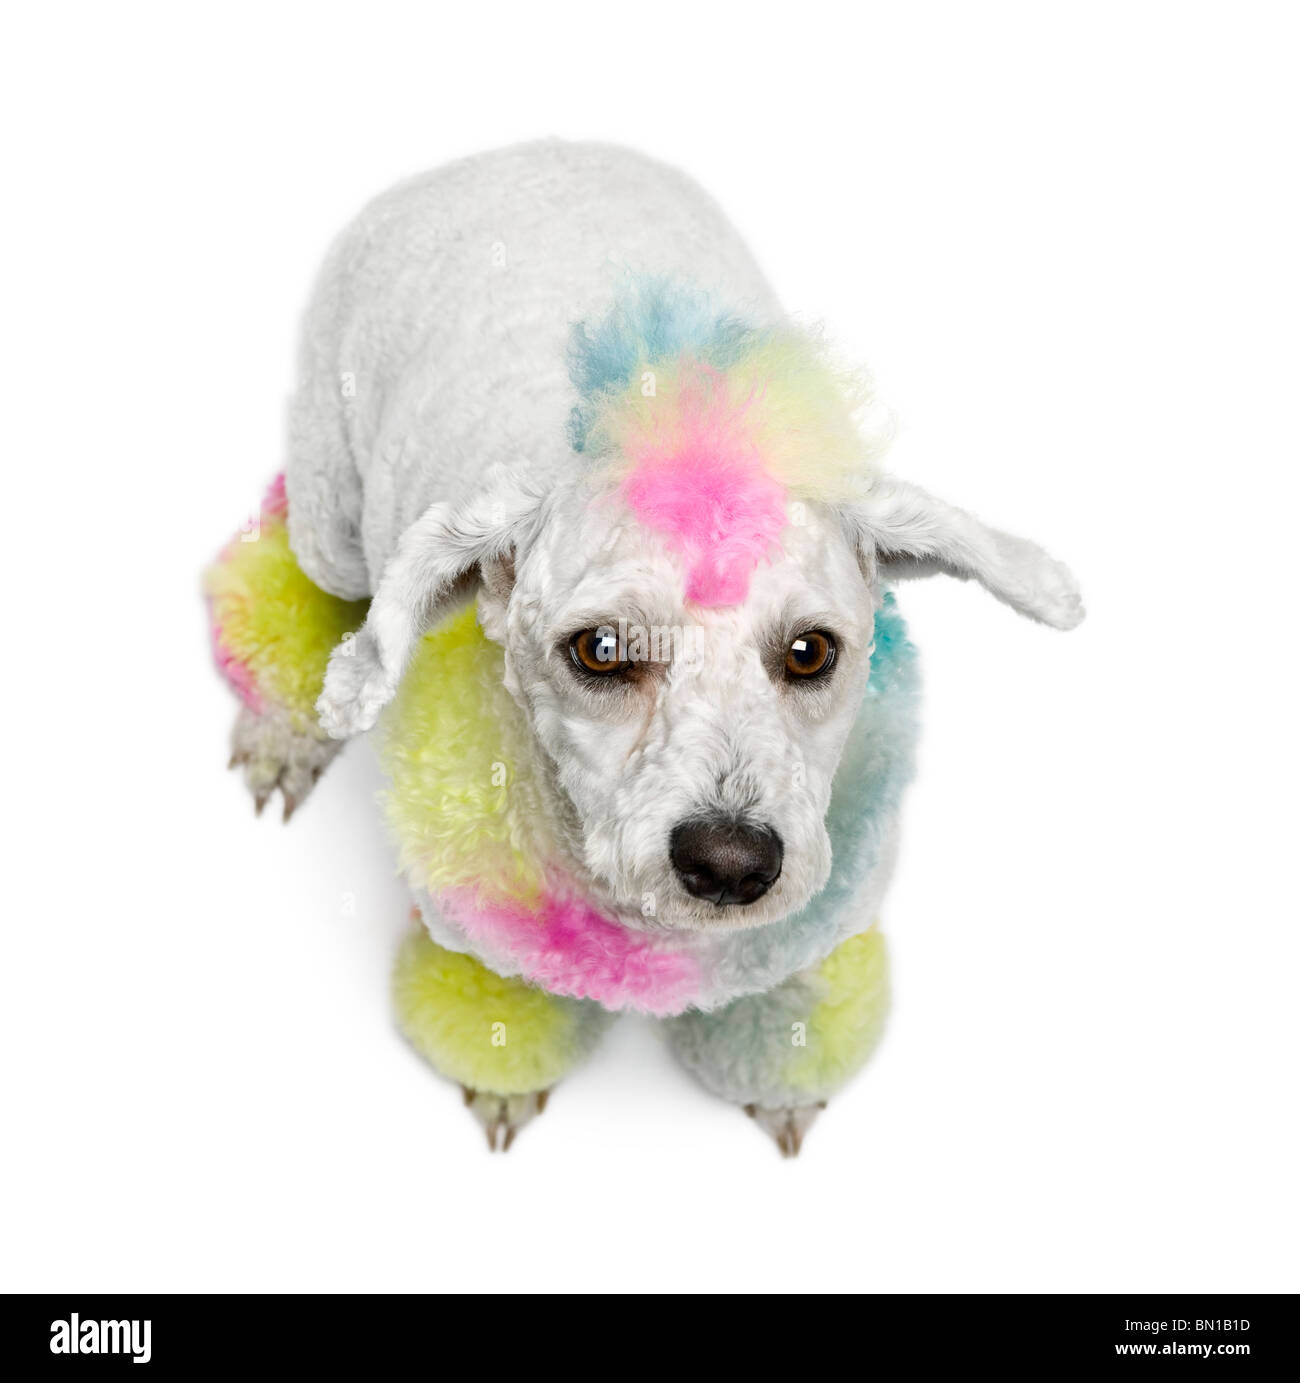 Poodle with multi-colored hair, 12 months old, sitting in front of white background - Stock Image